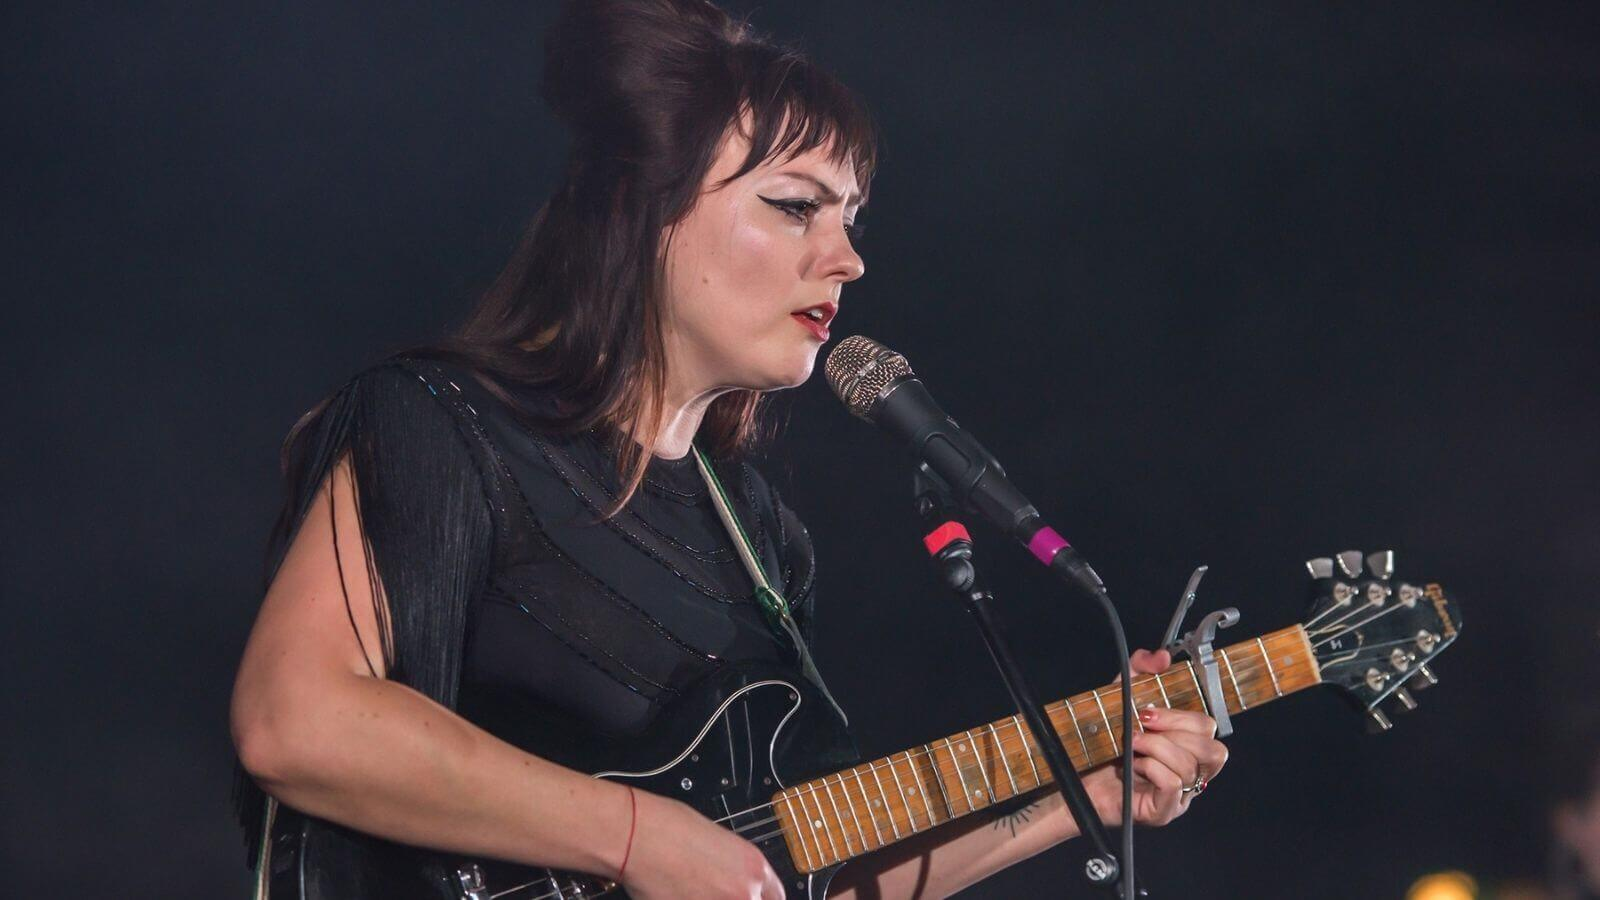 Background image for Angel Olsen Confirms She Is Gay In Her New Instagram Post